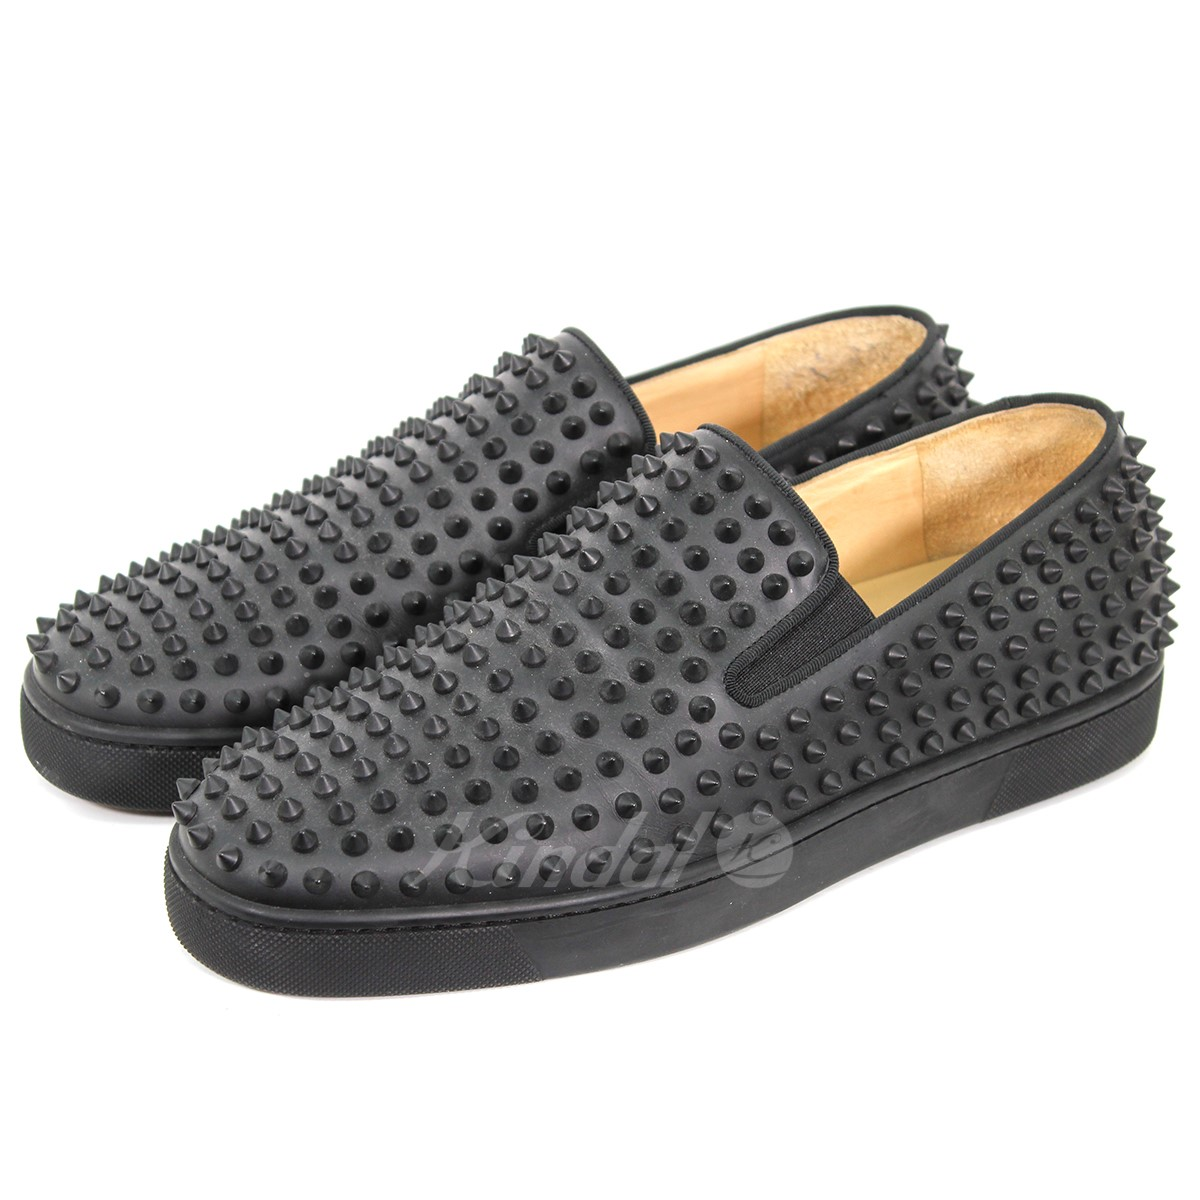 official photos 01b81 3c2b2 CHRISTIAN LOUBOUTIN roller boat studs slip-ons sneakers black size: 43  (クリスチャンルブタン)